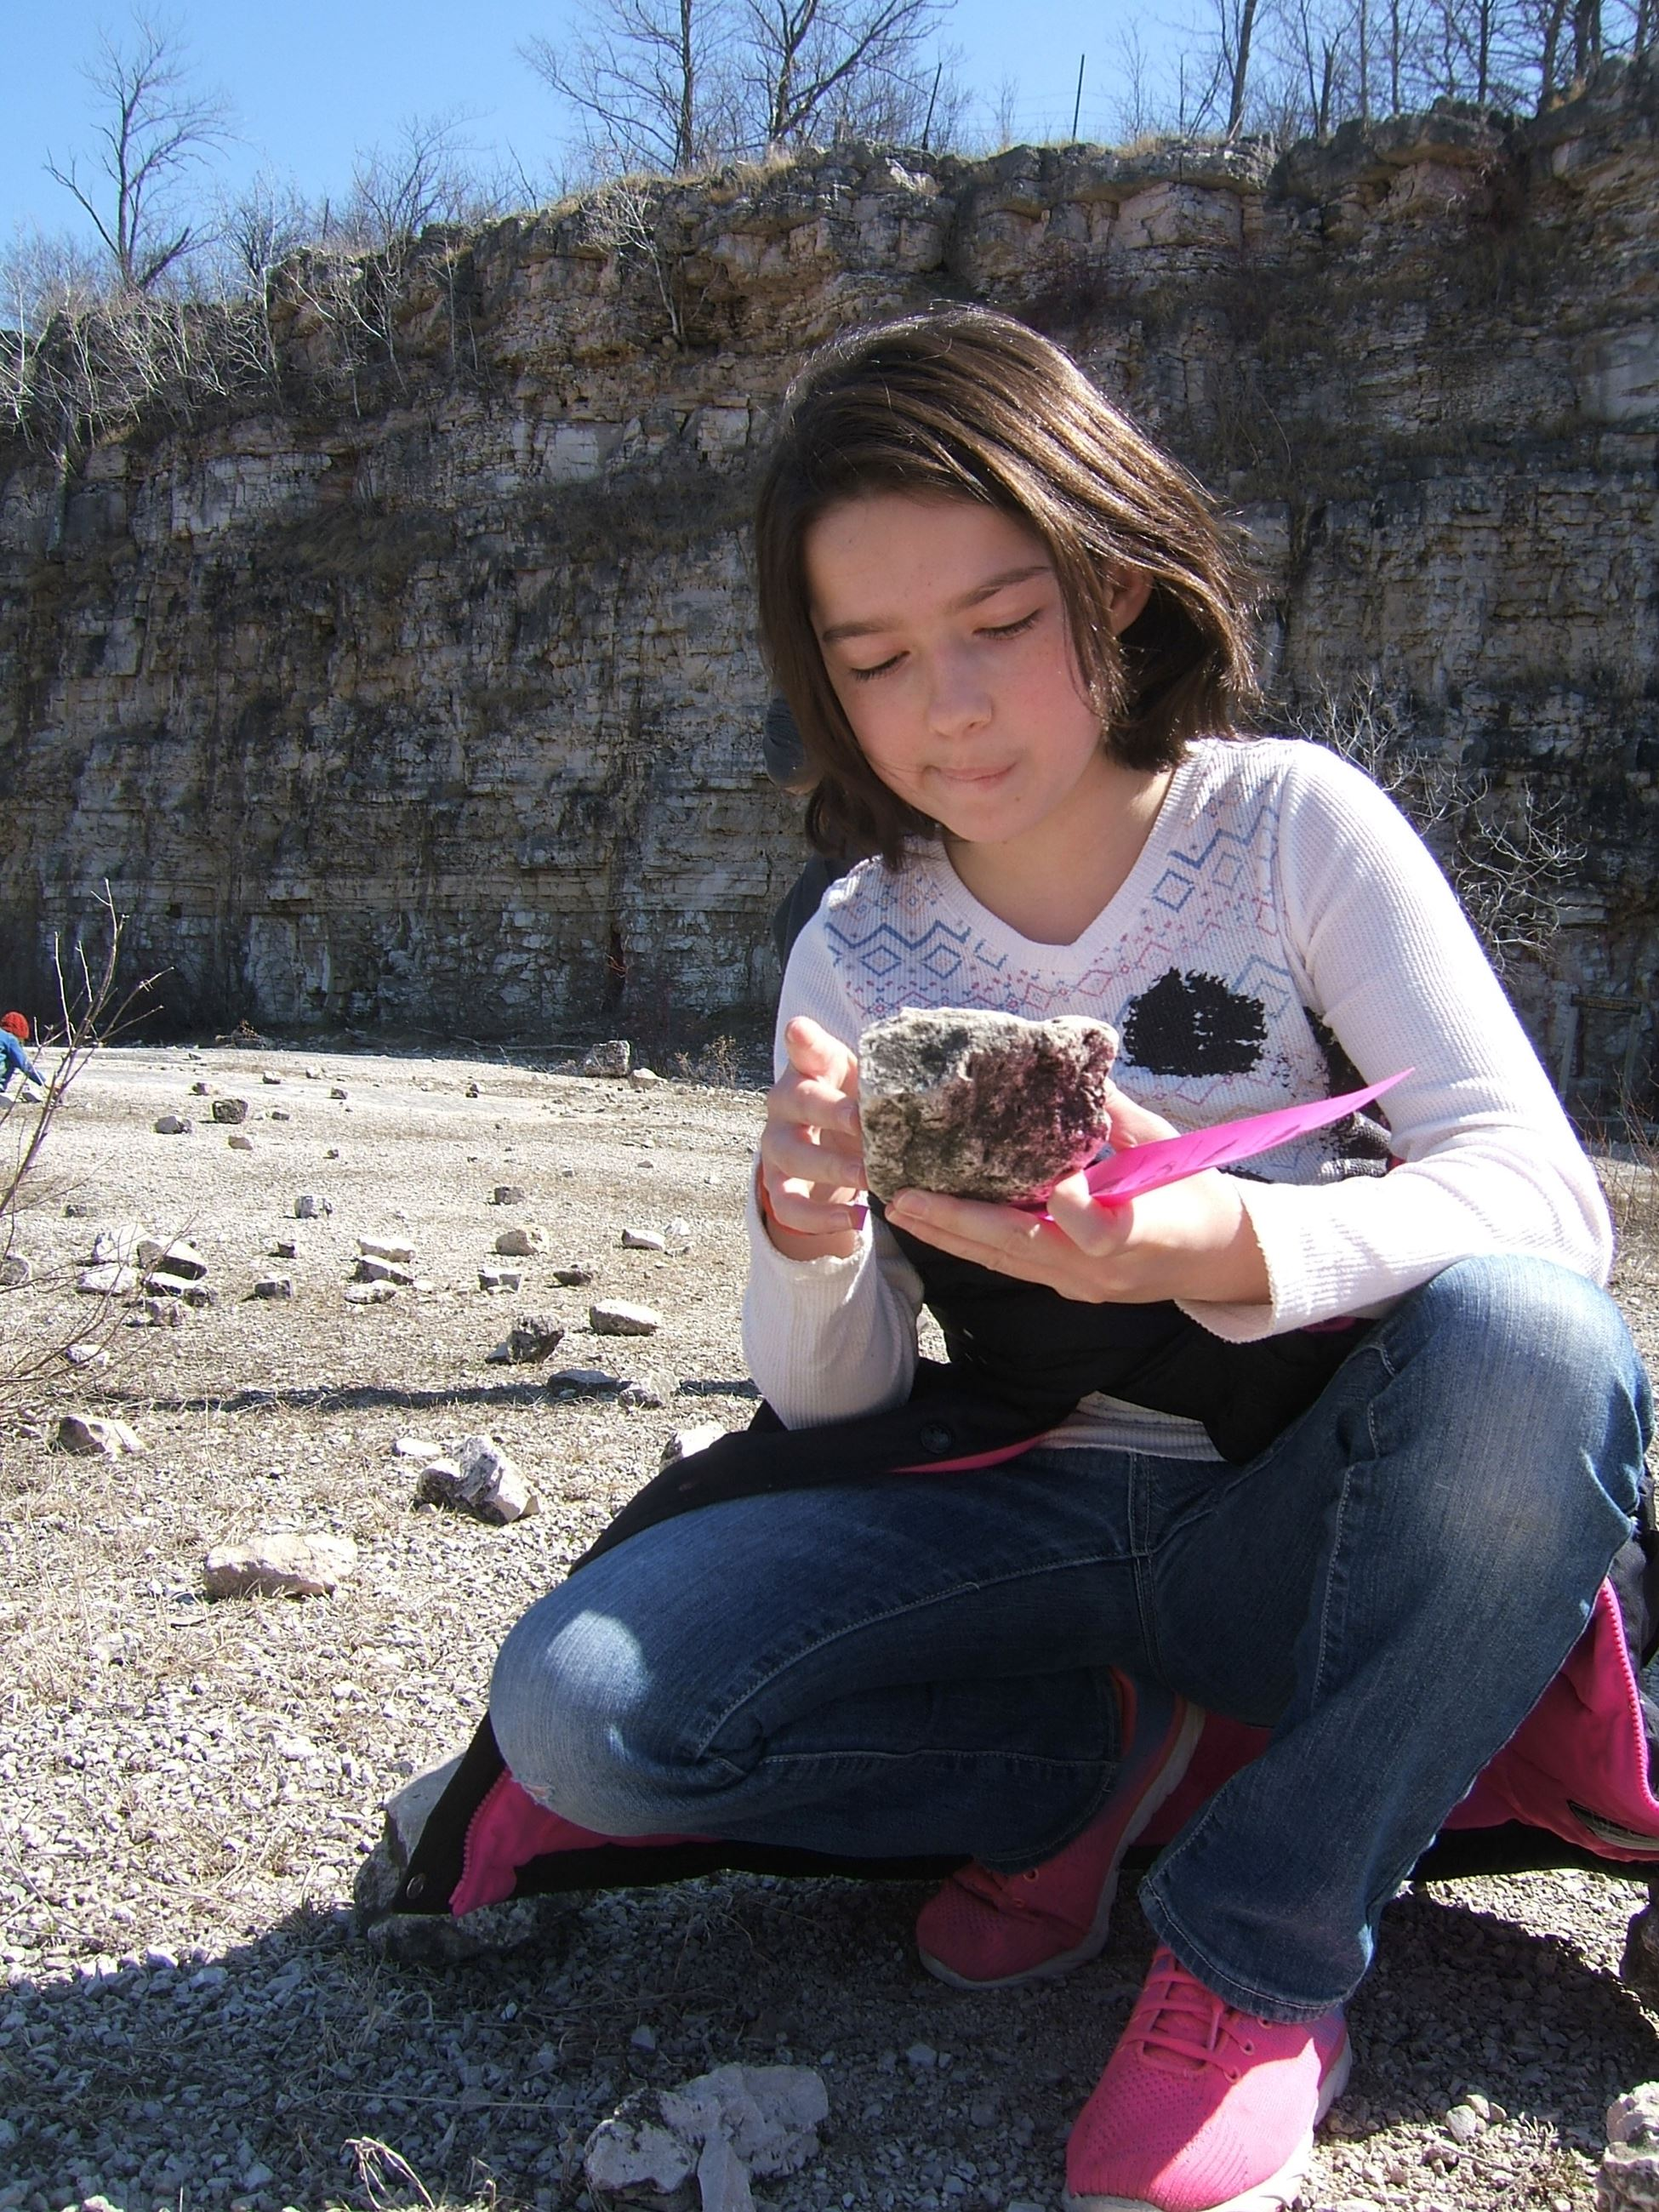 girl looking at a rock with a fossil in it